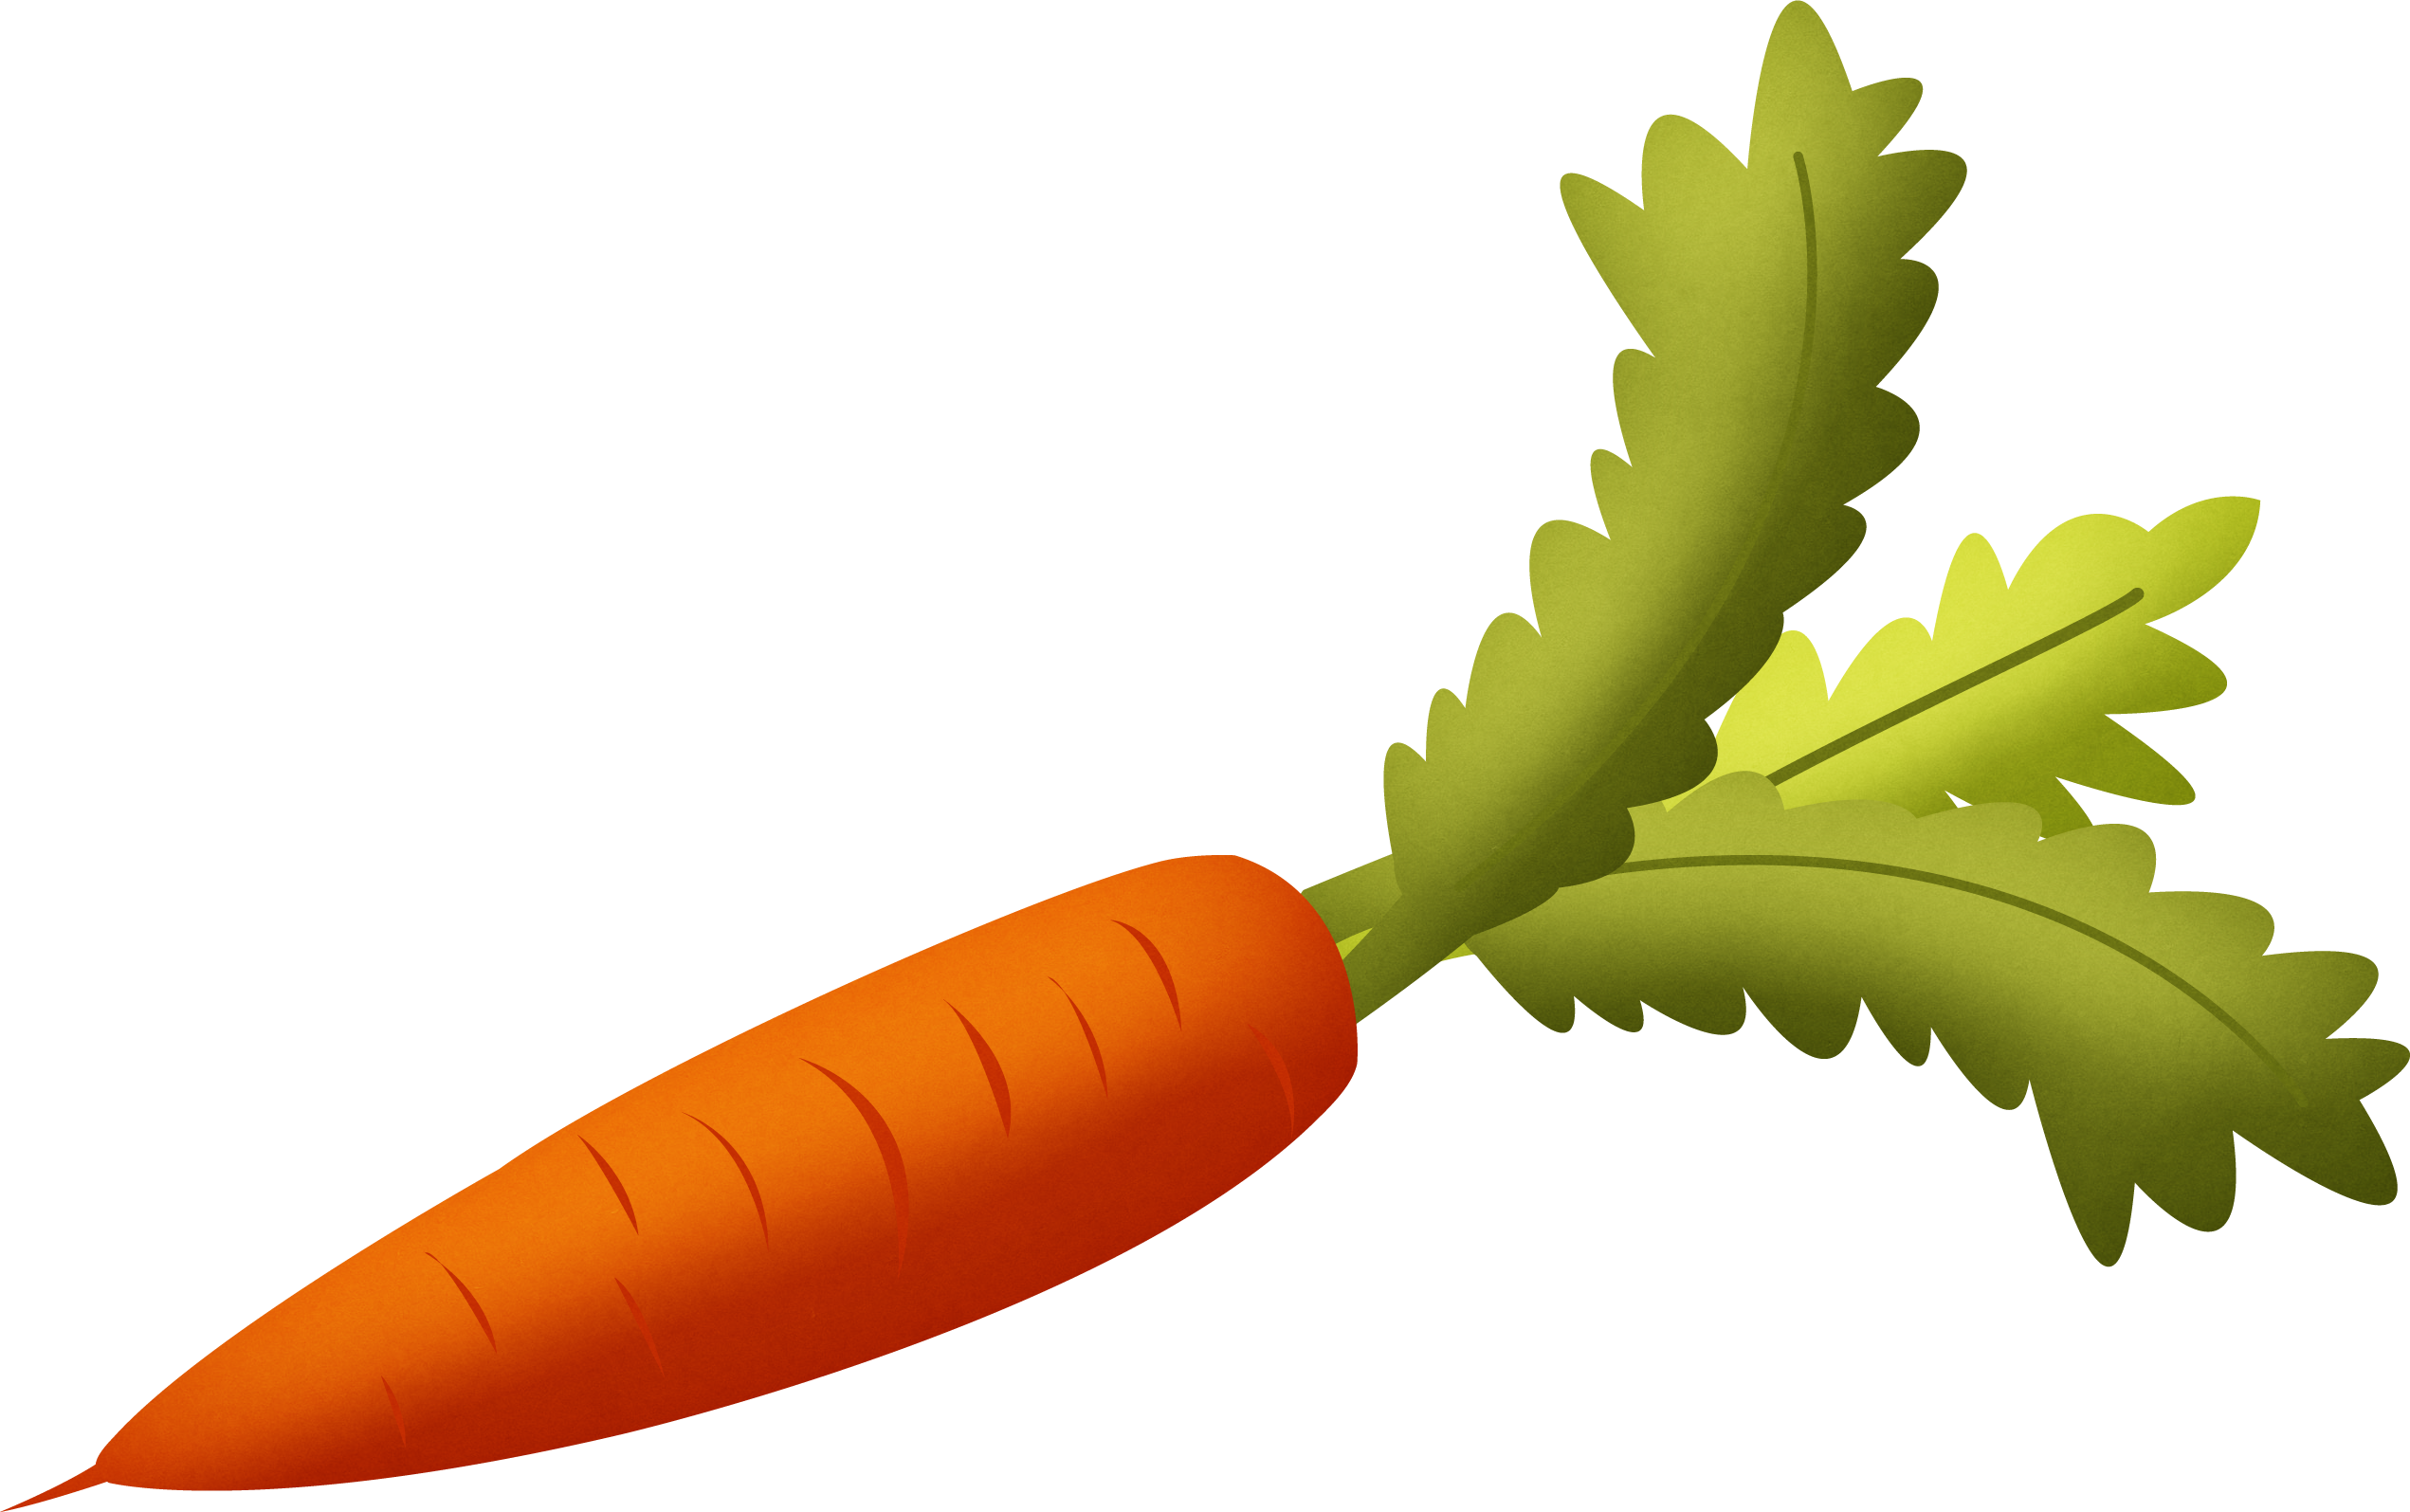 Fish and vegetables clipart clipart library Vegetables Clipart at GetDrawings.com | Free for personal use ... clipart library